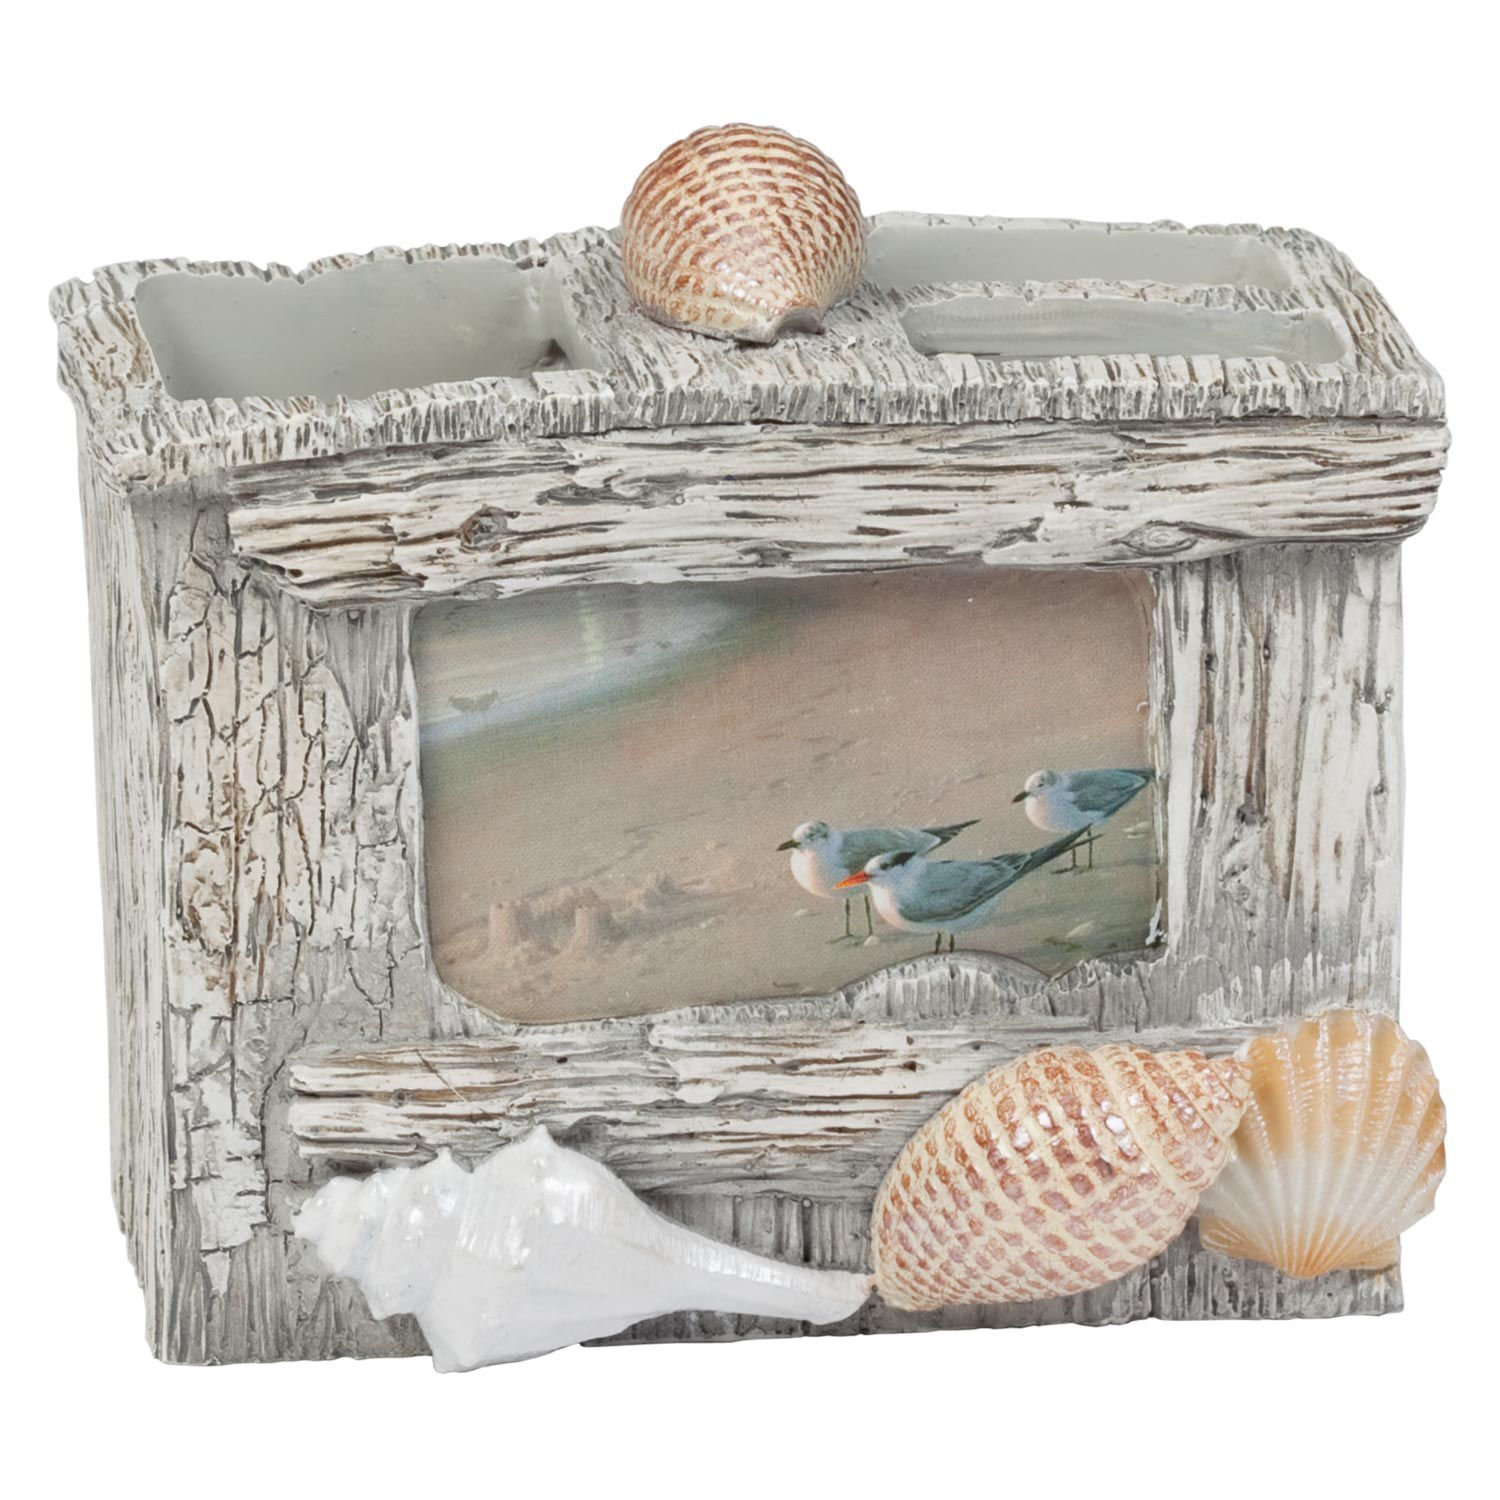 Creative Bath Products at The Beach Toothbrush Holder by Creative Bath